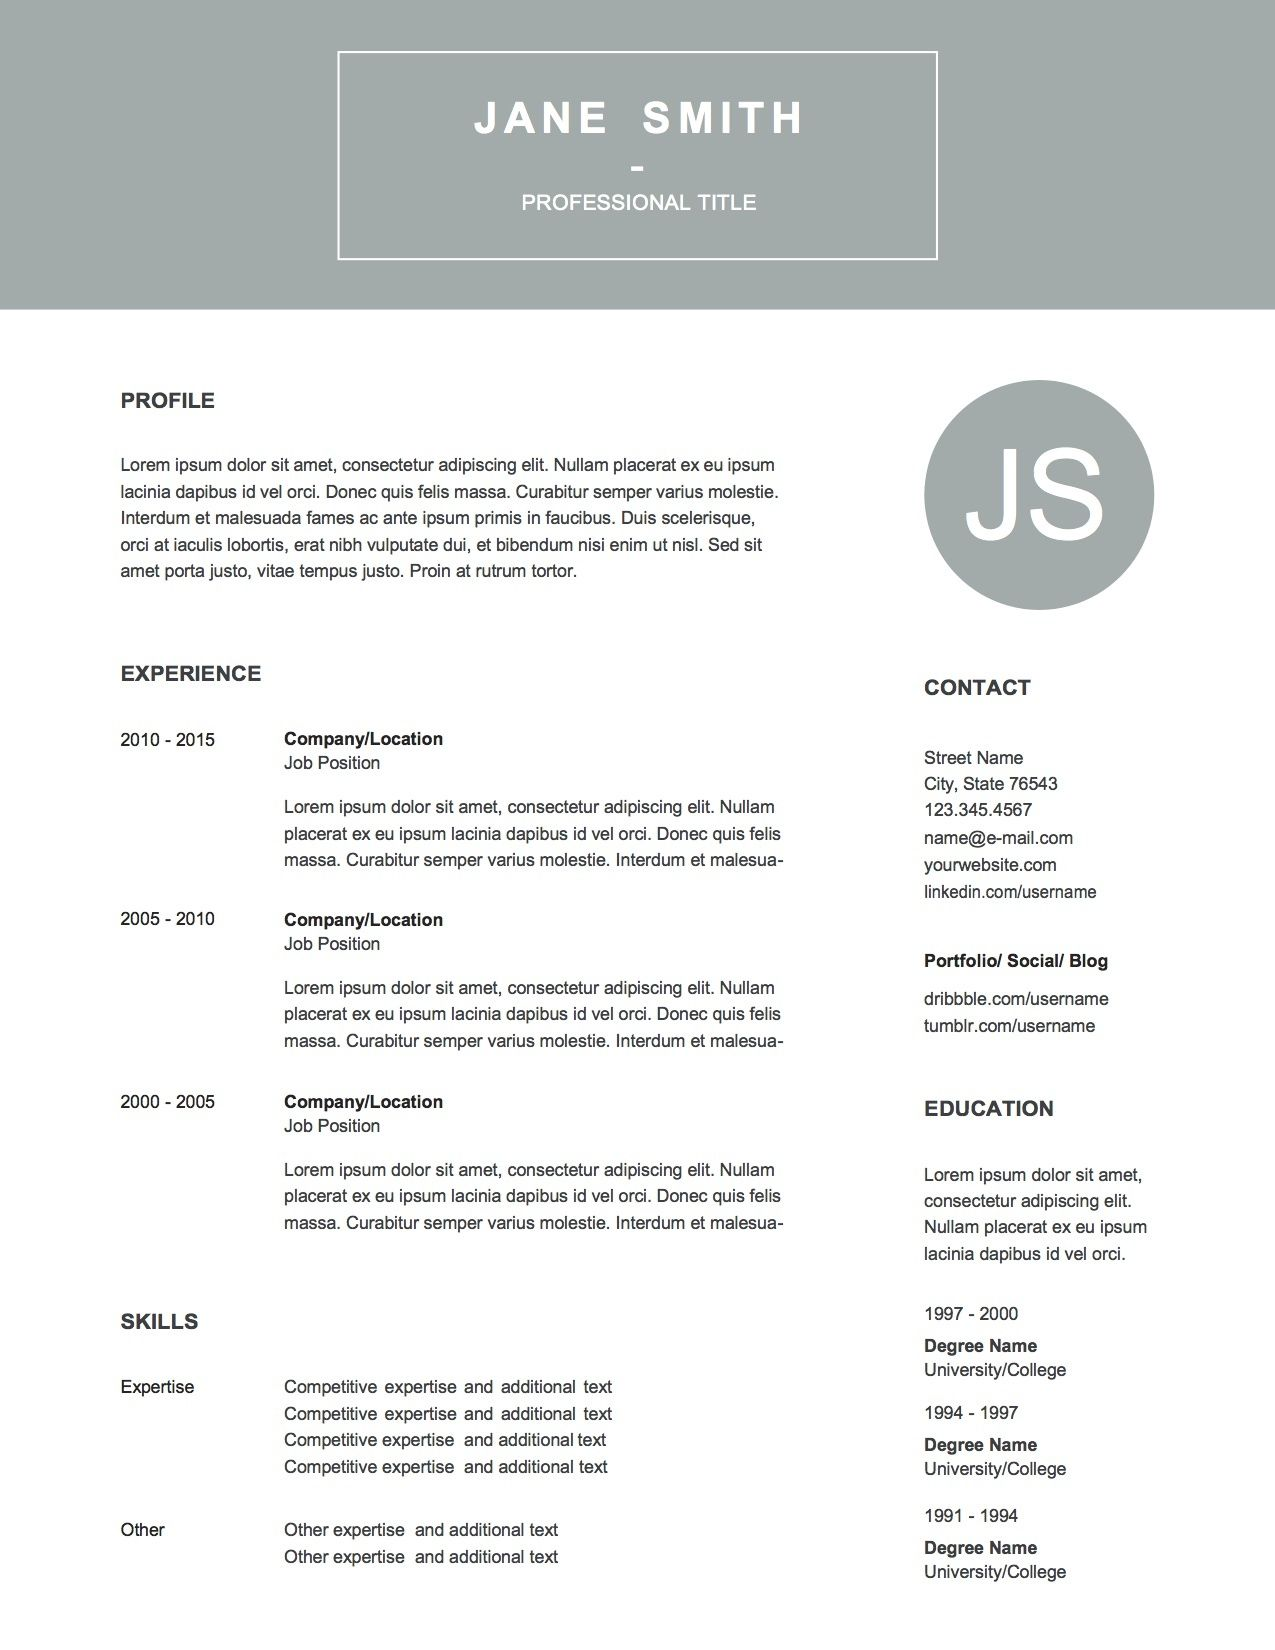 Check out our brand new resume designs that are perfect